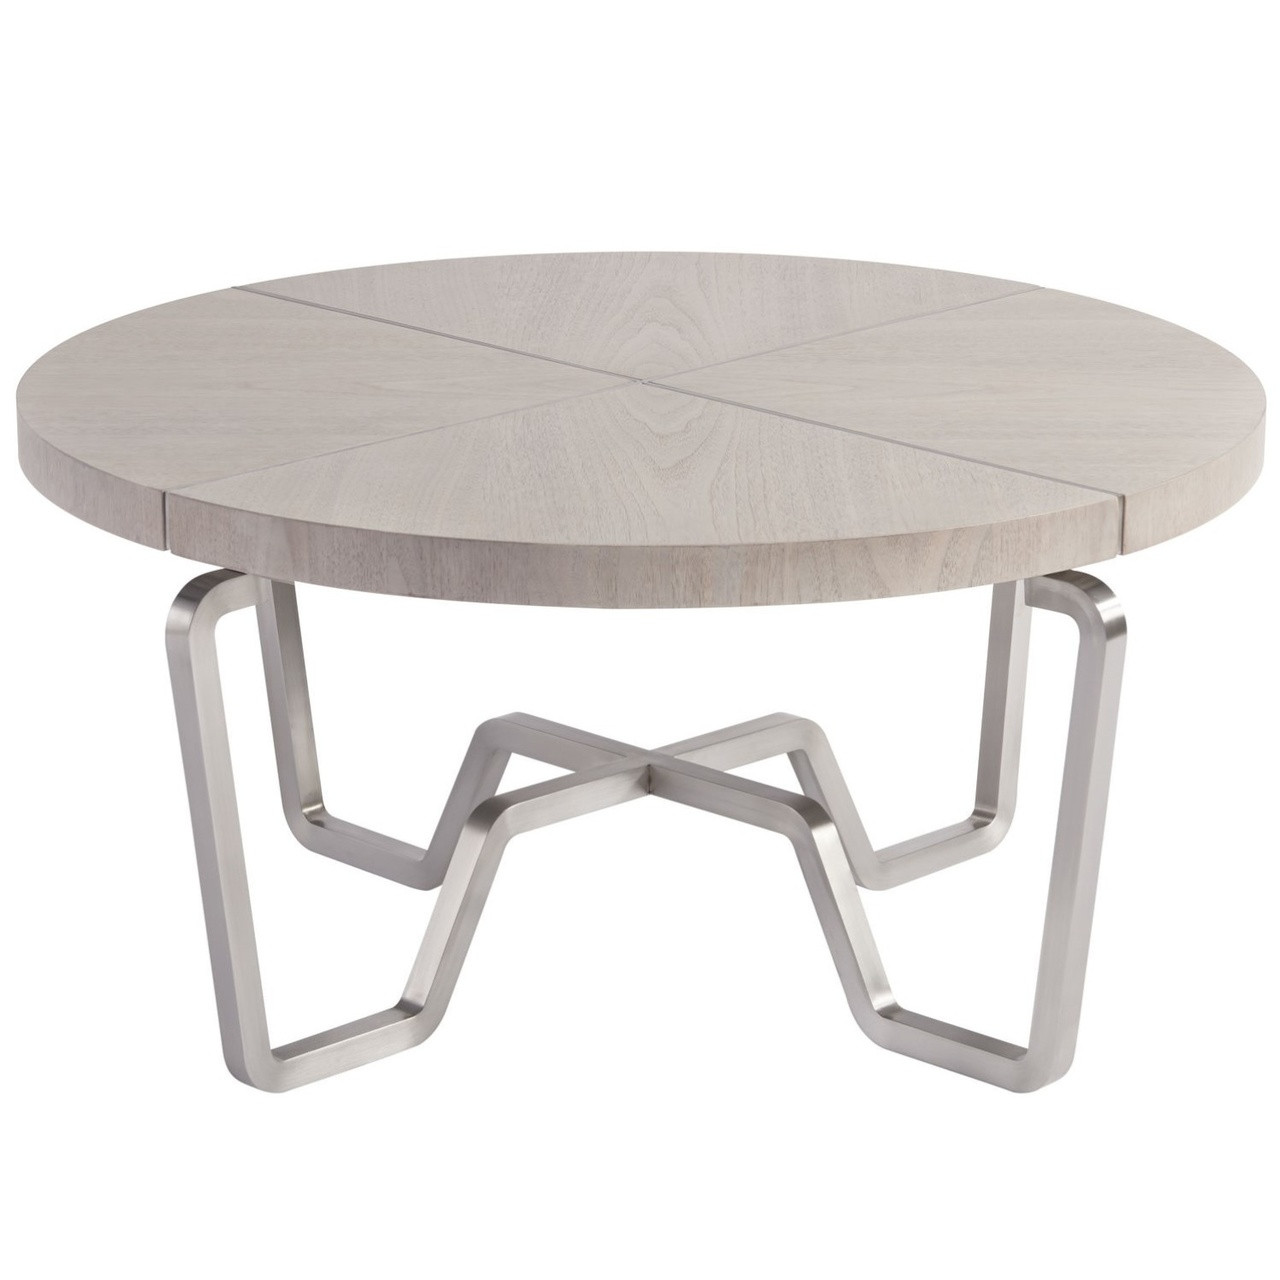 Urban Modern Mist Gray Round Coffee Table 36 Zin Home